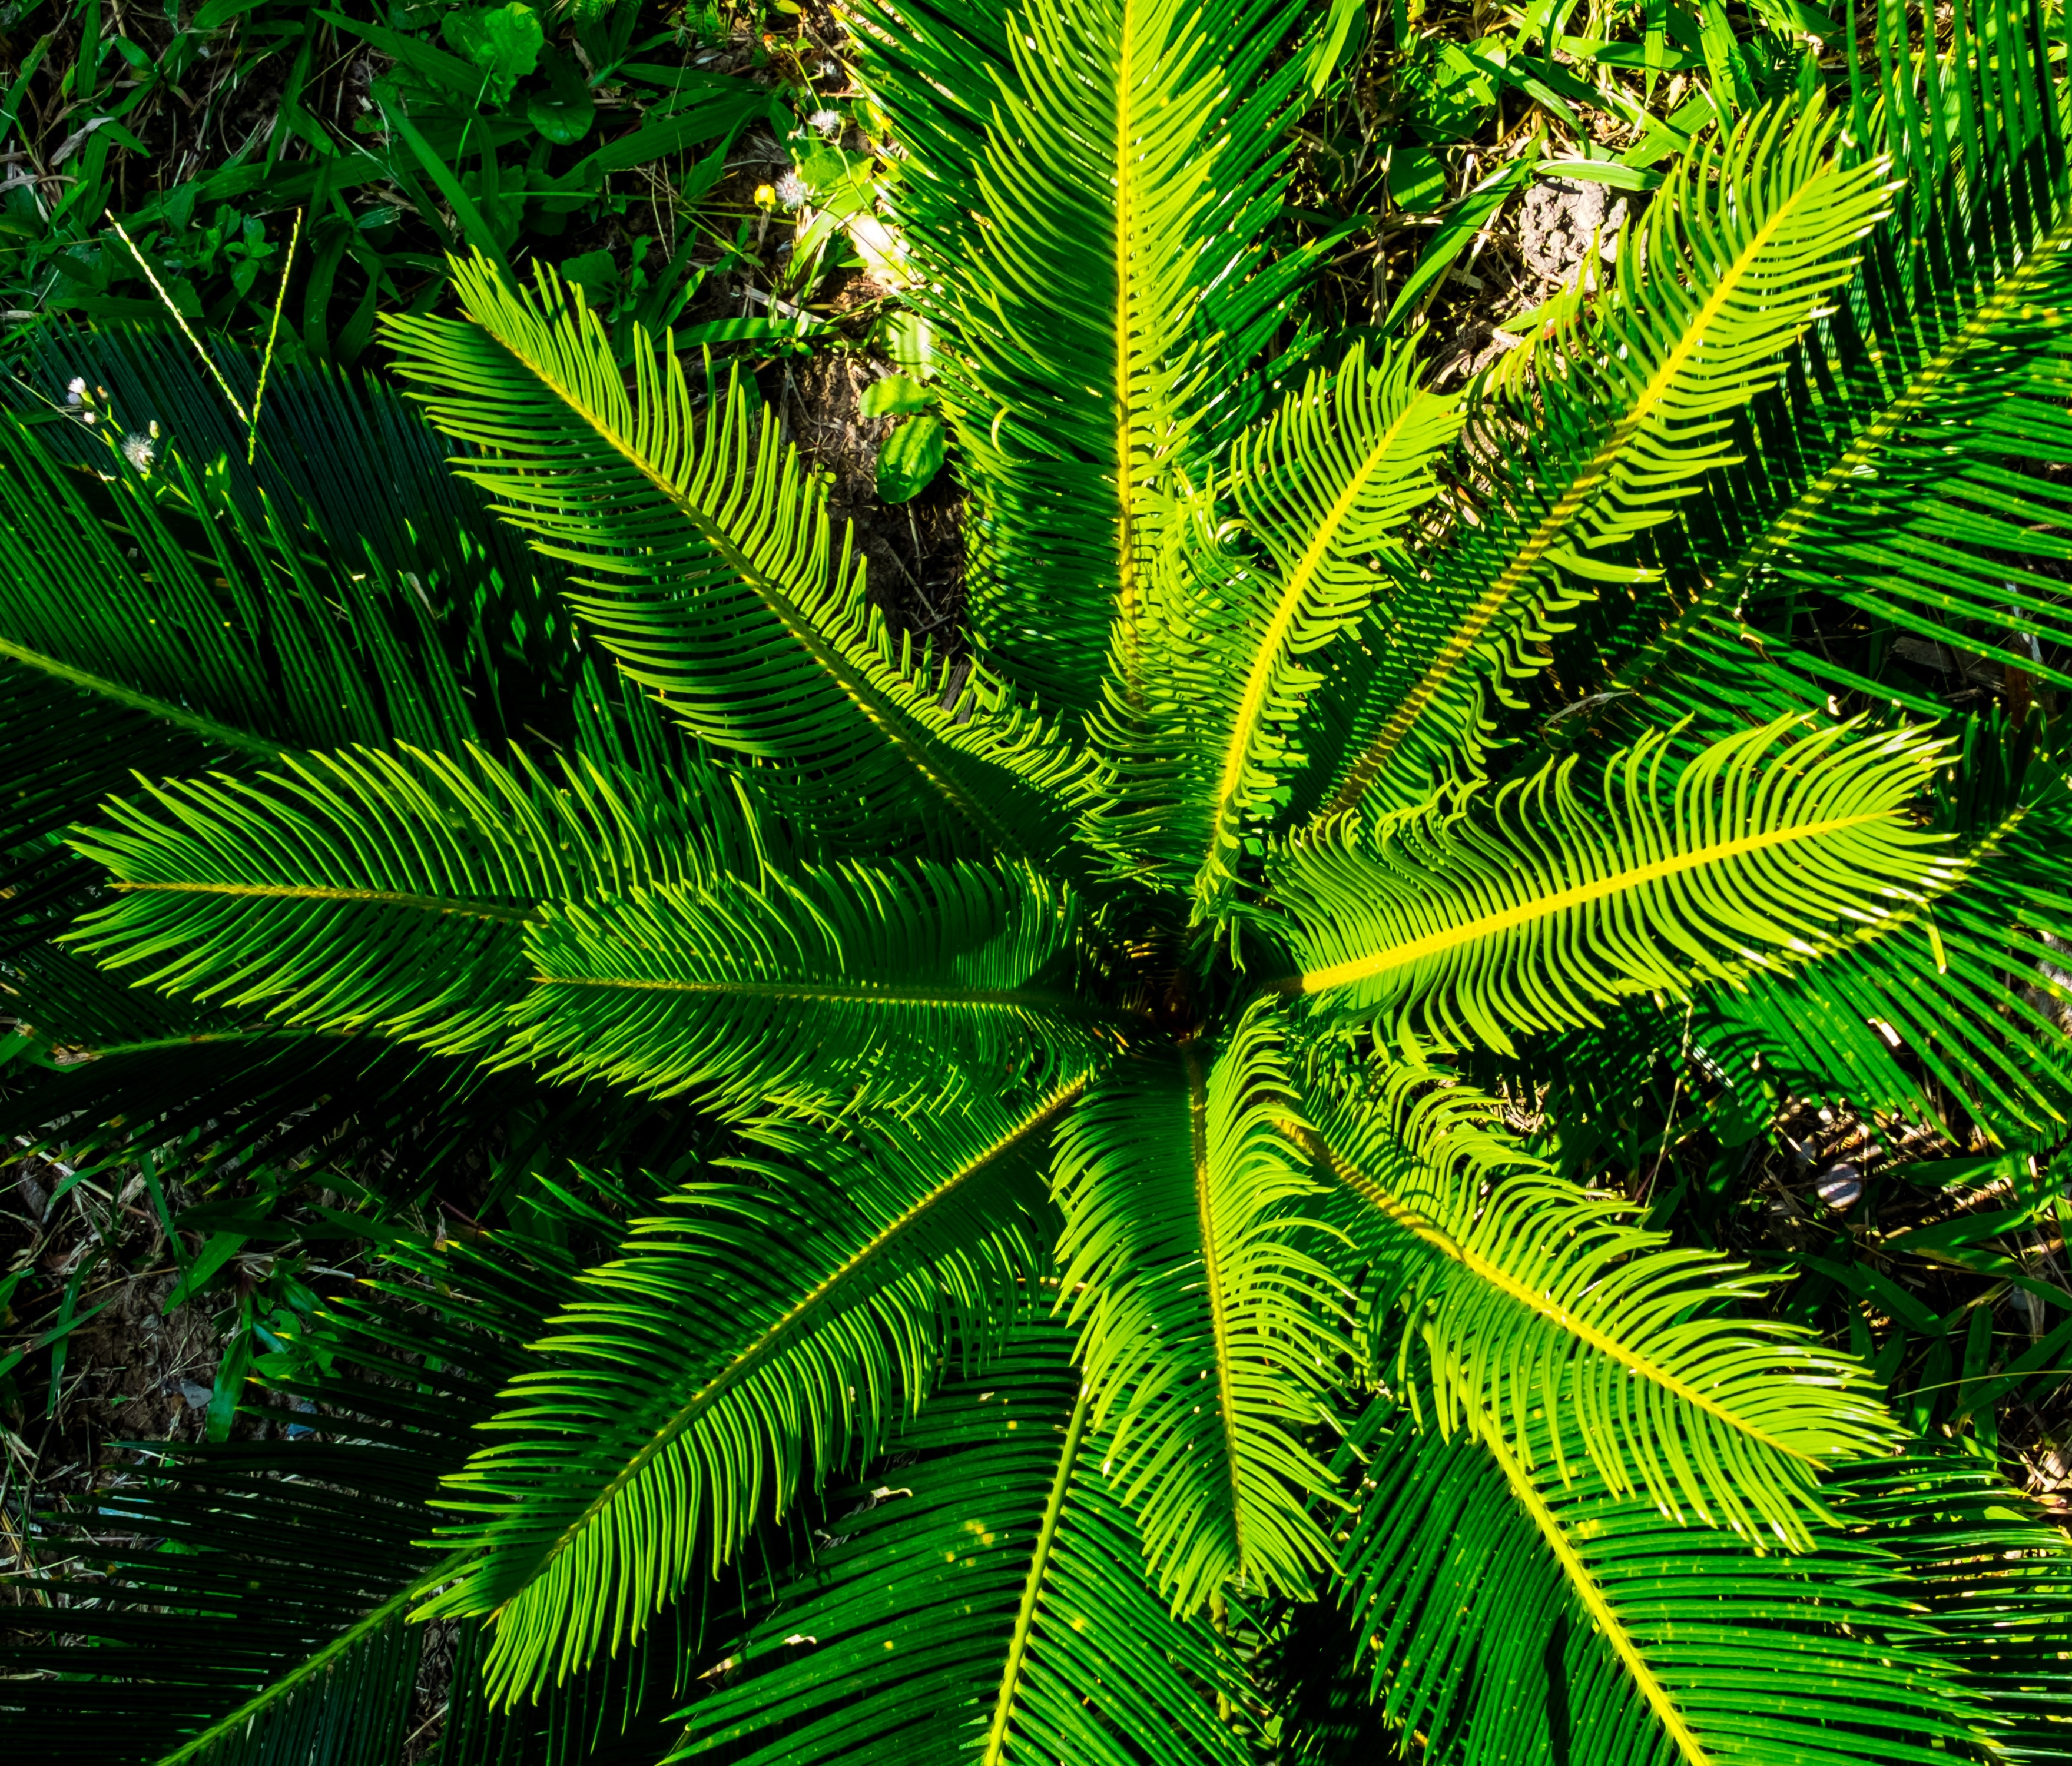 Download Wallpaper 3d 1366x768 Close Up Photography Of Green Sago Palm Free Image Peakpx